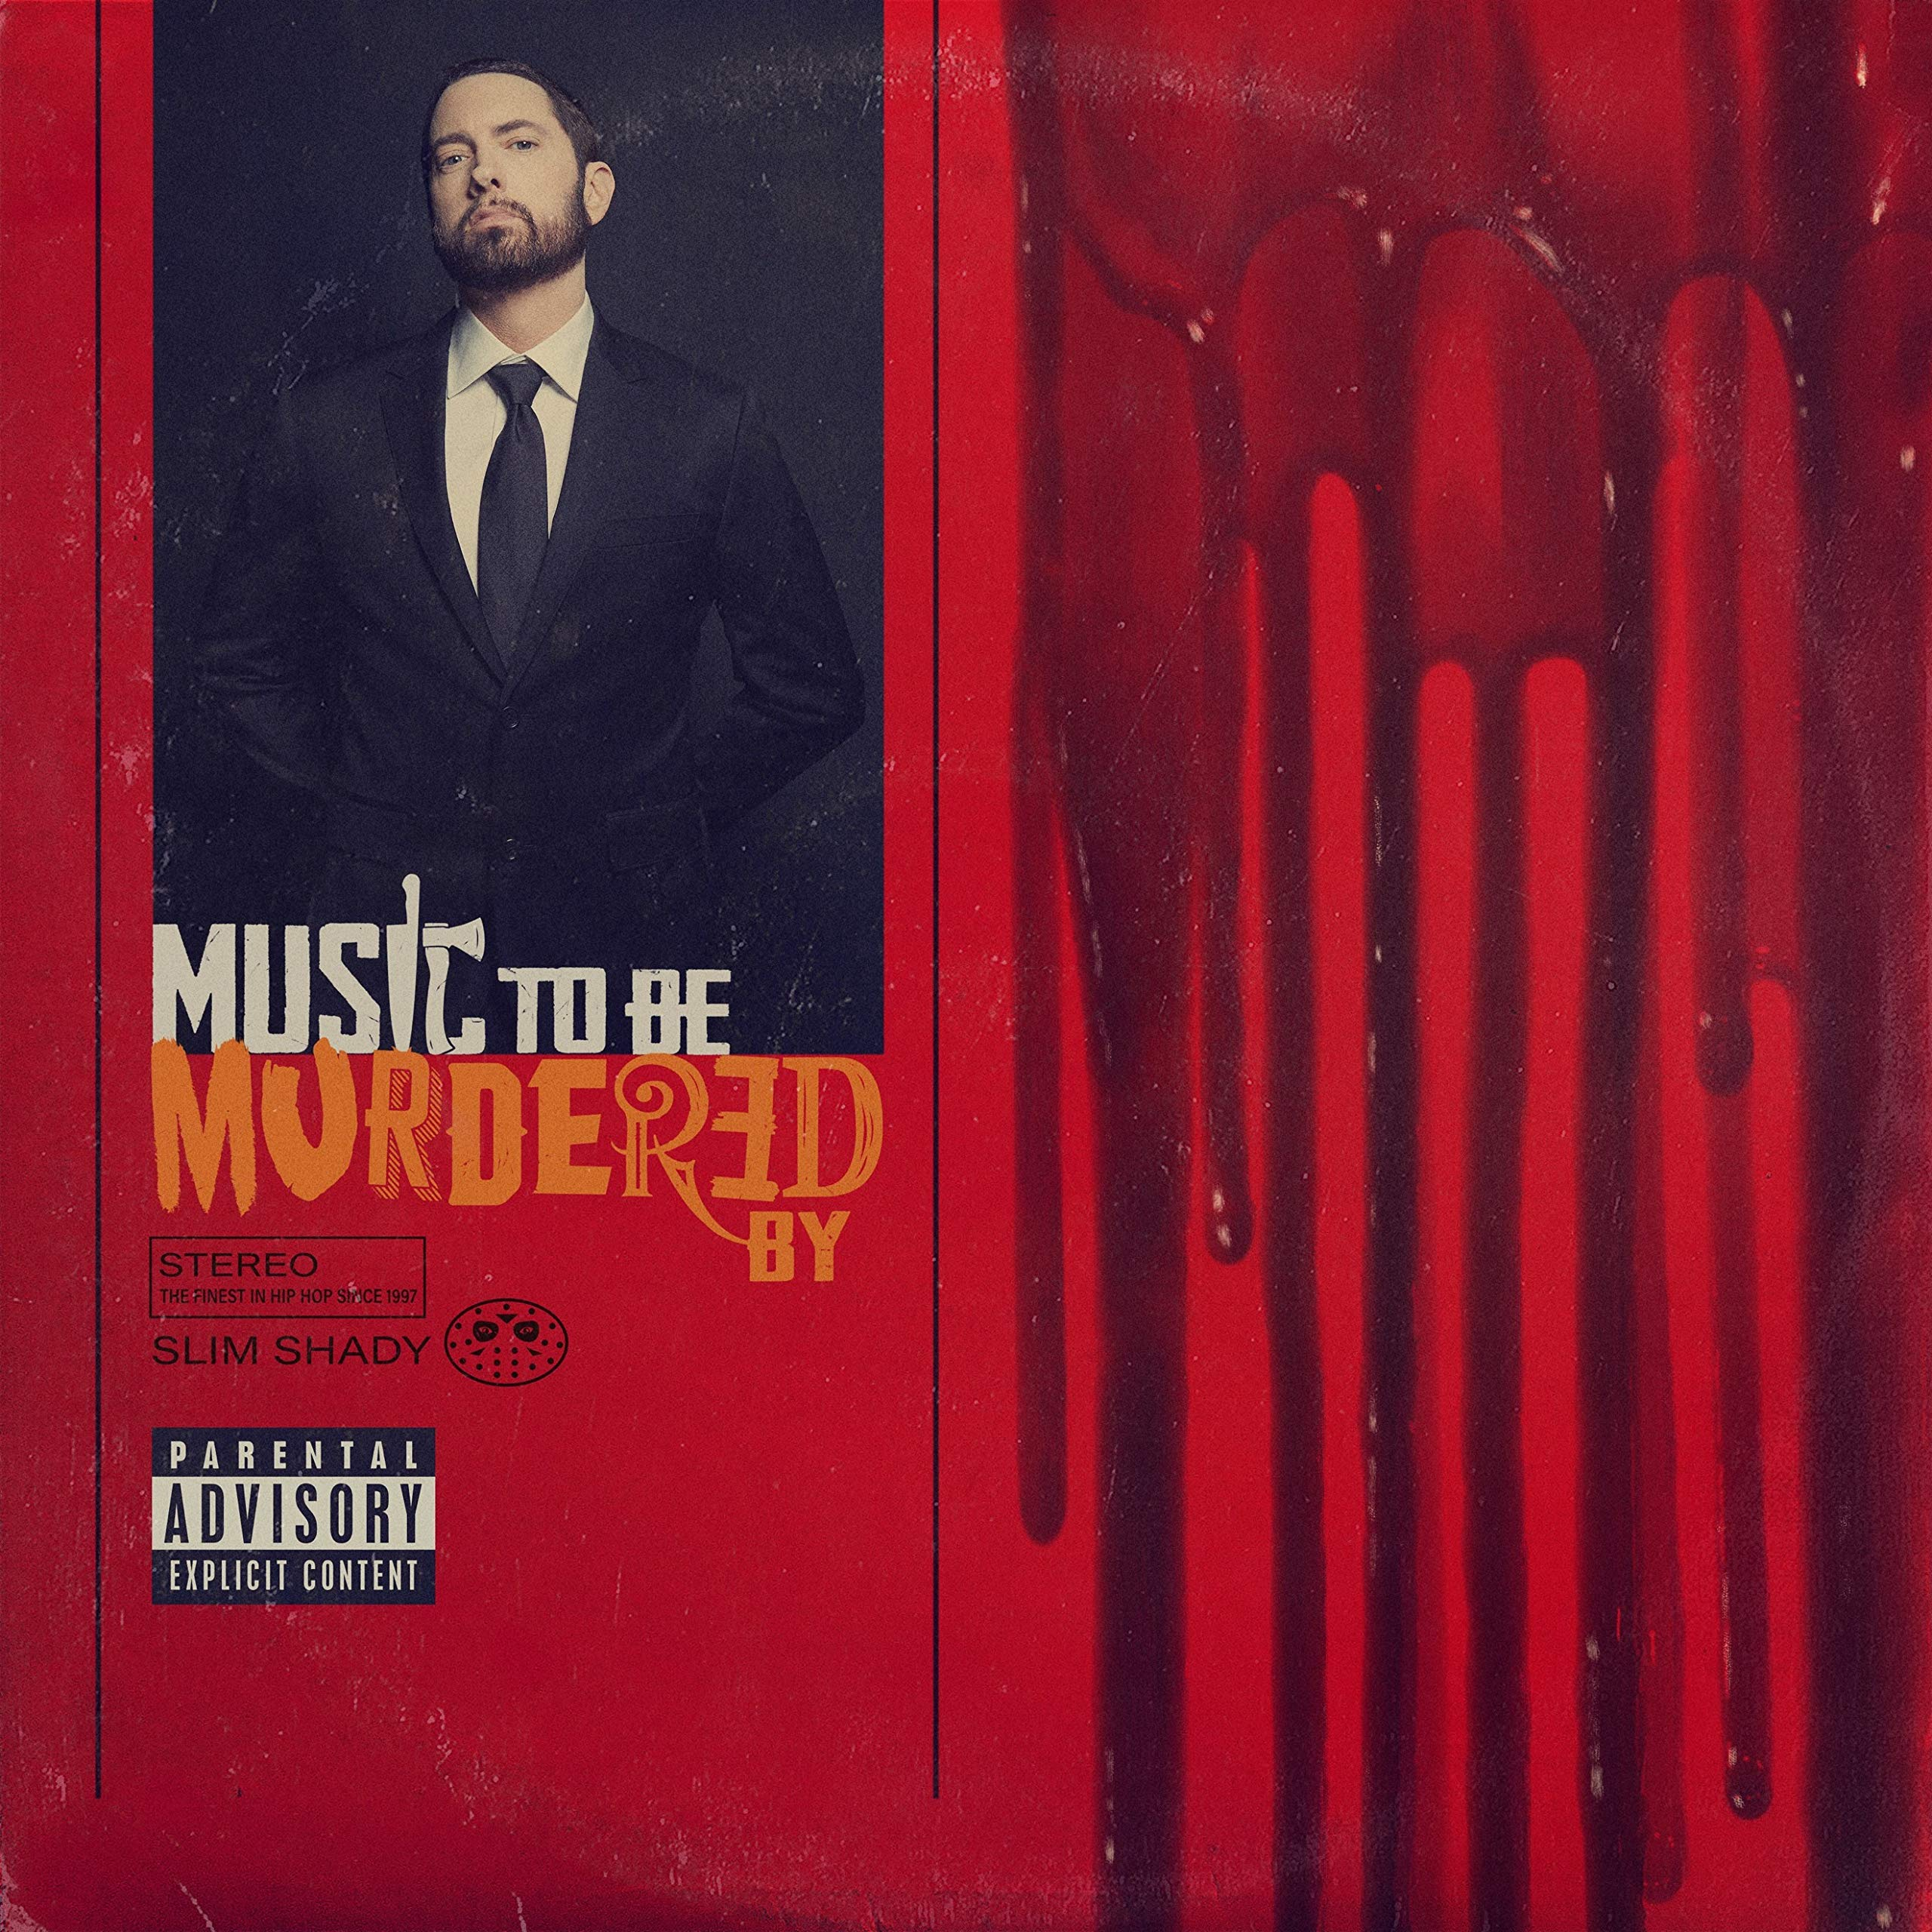 Book Cover: Music To Be Murdered By                                                                                                                                                                    Explicit Lyrics